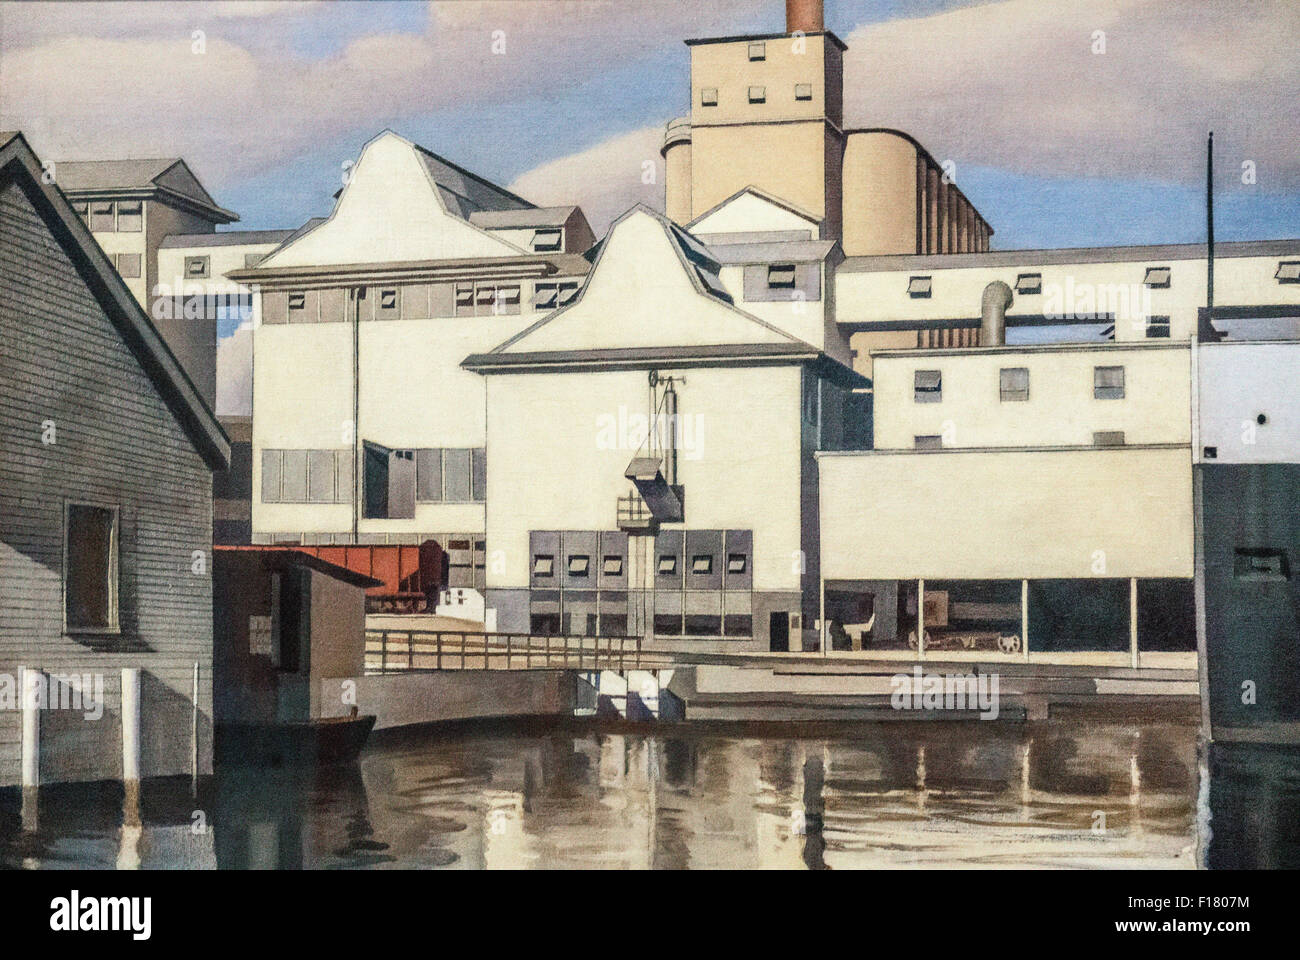 view of American painter Charles Sheeler 1932 homage to the industrial strength & beauty of Ford Motor Company - Stock Image